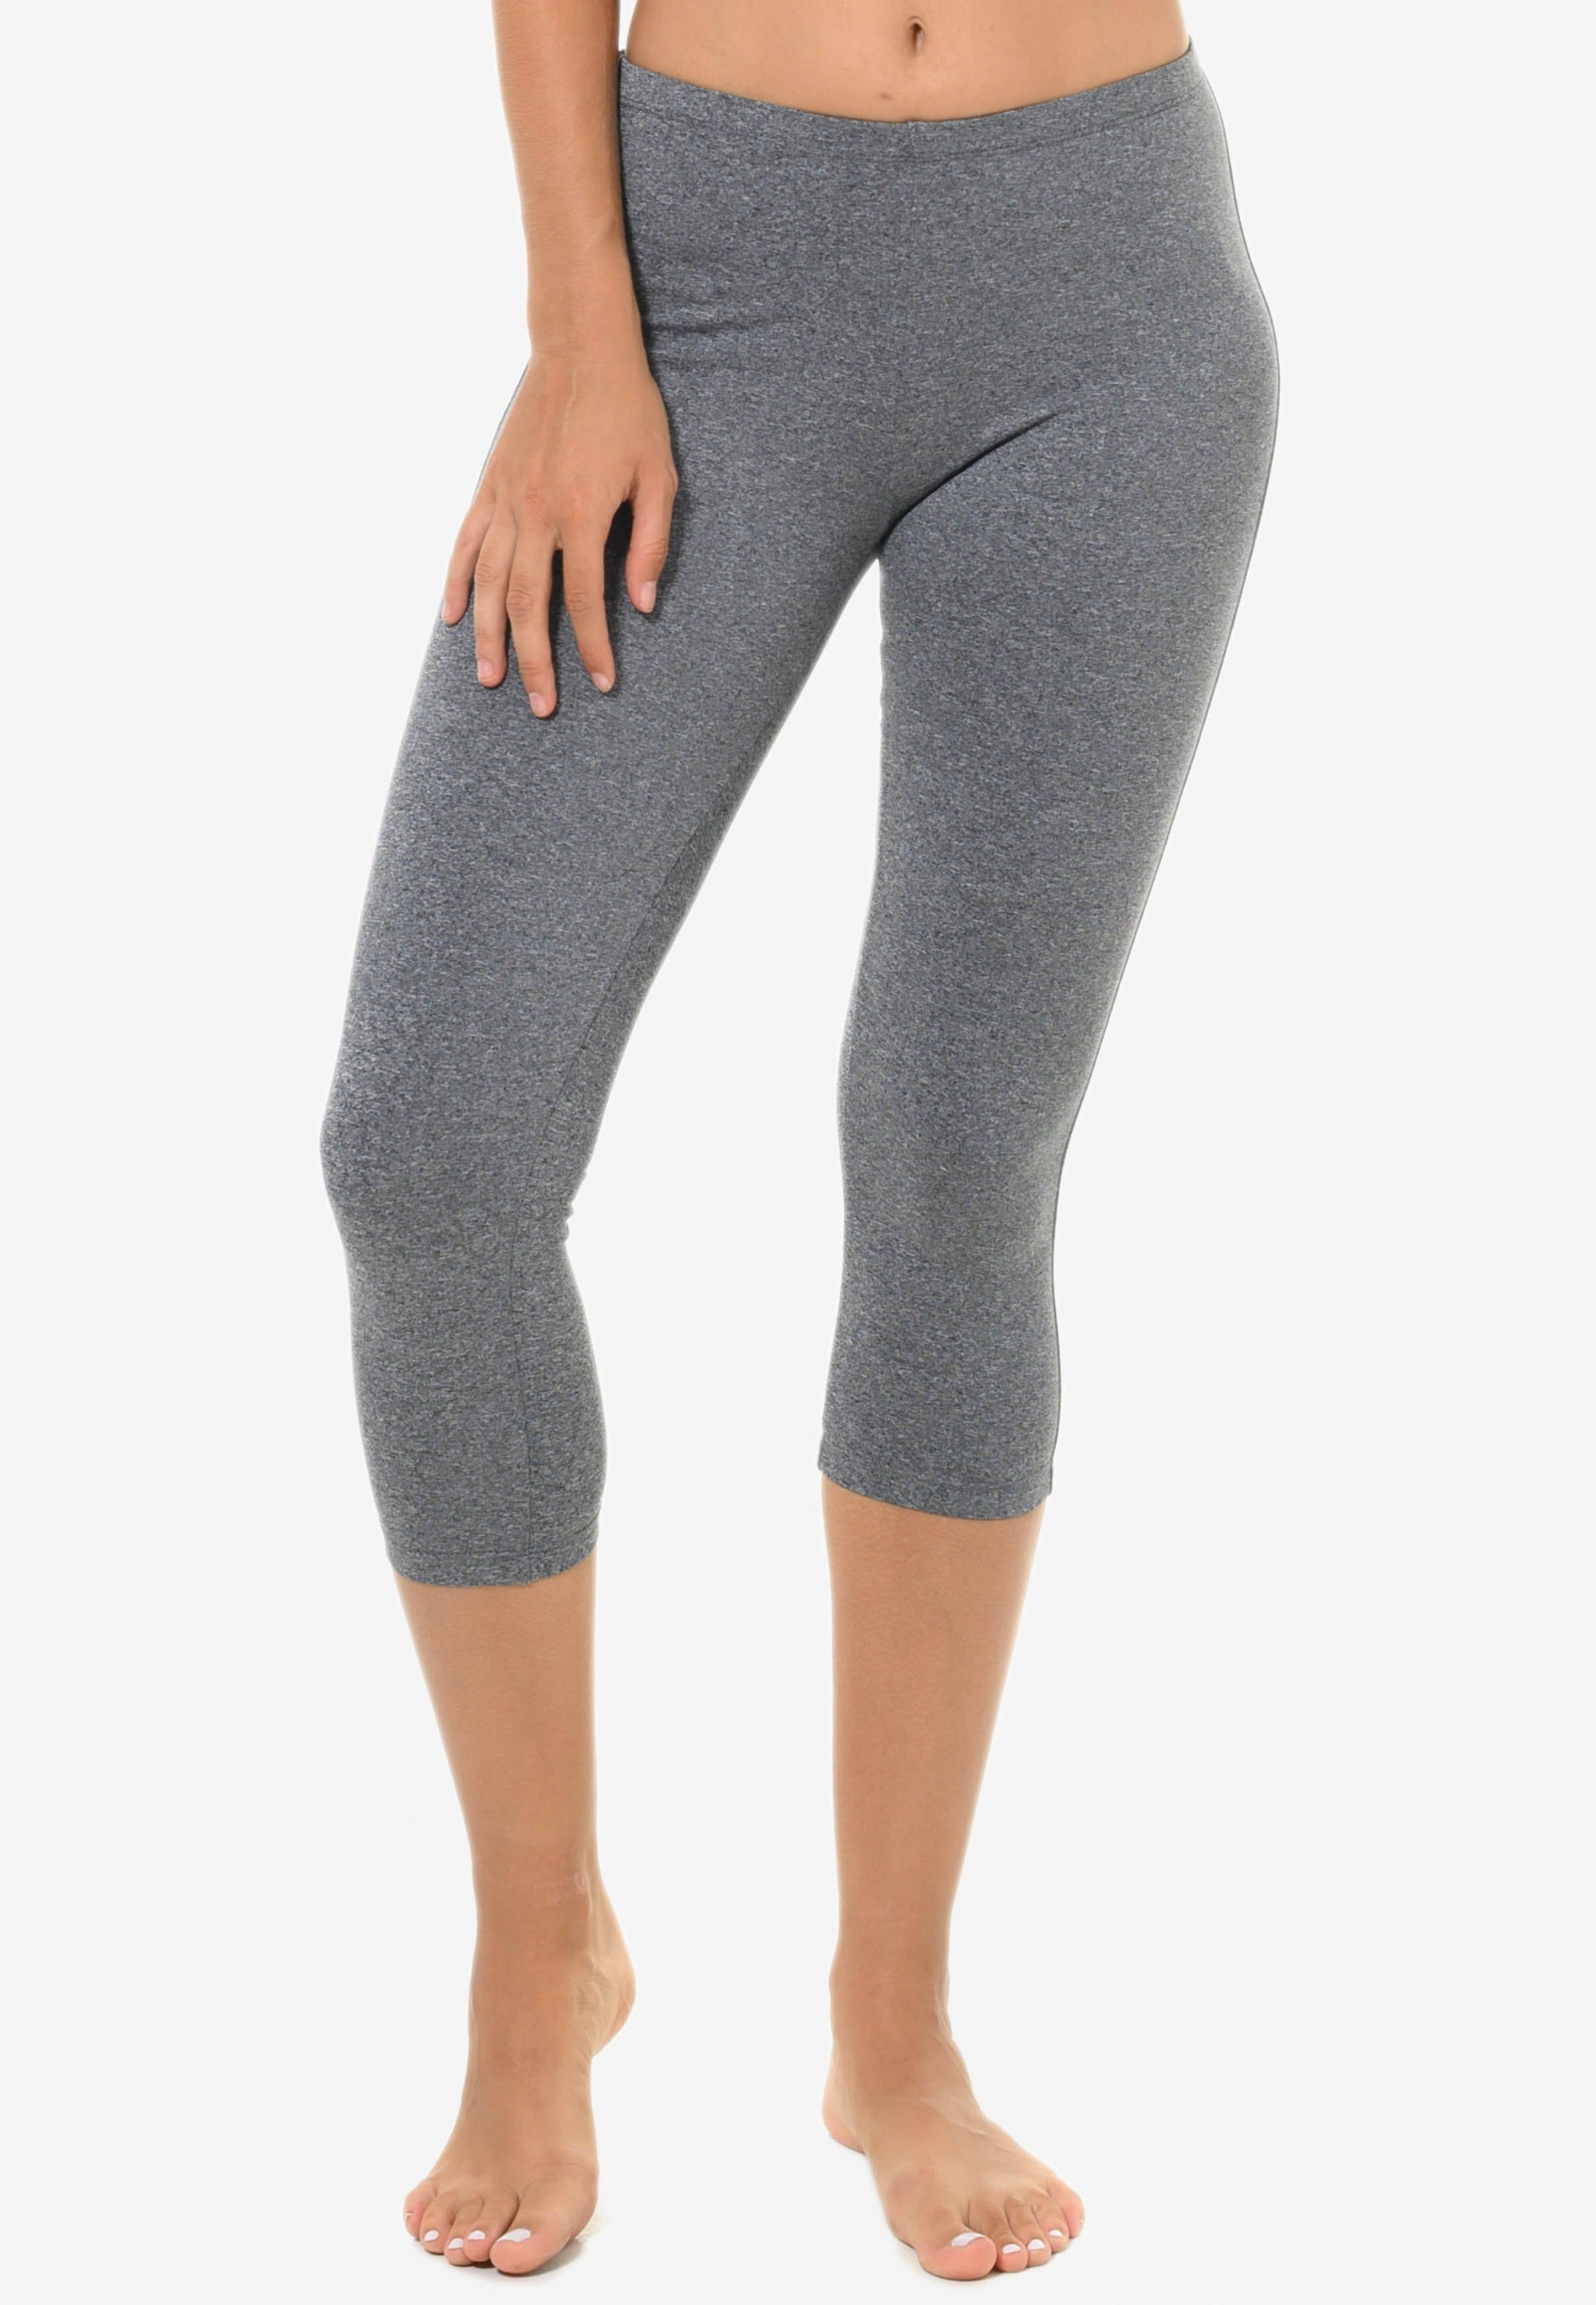 FUNFIT Basic Capris in Heather Grey (S - XL)